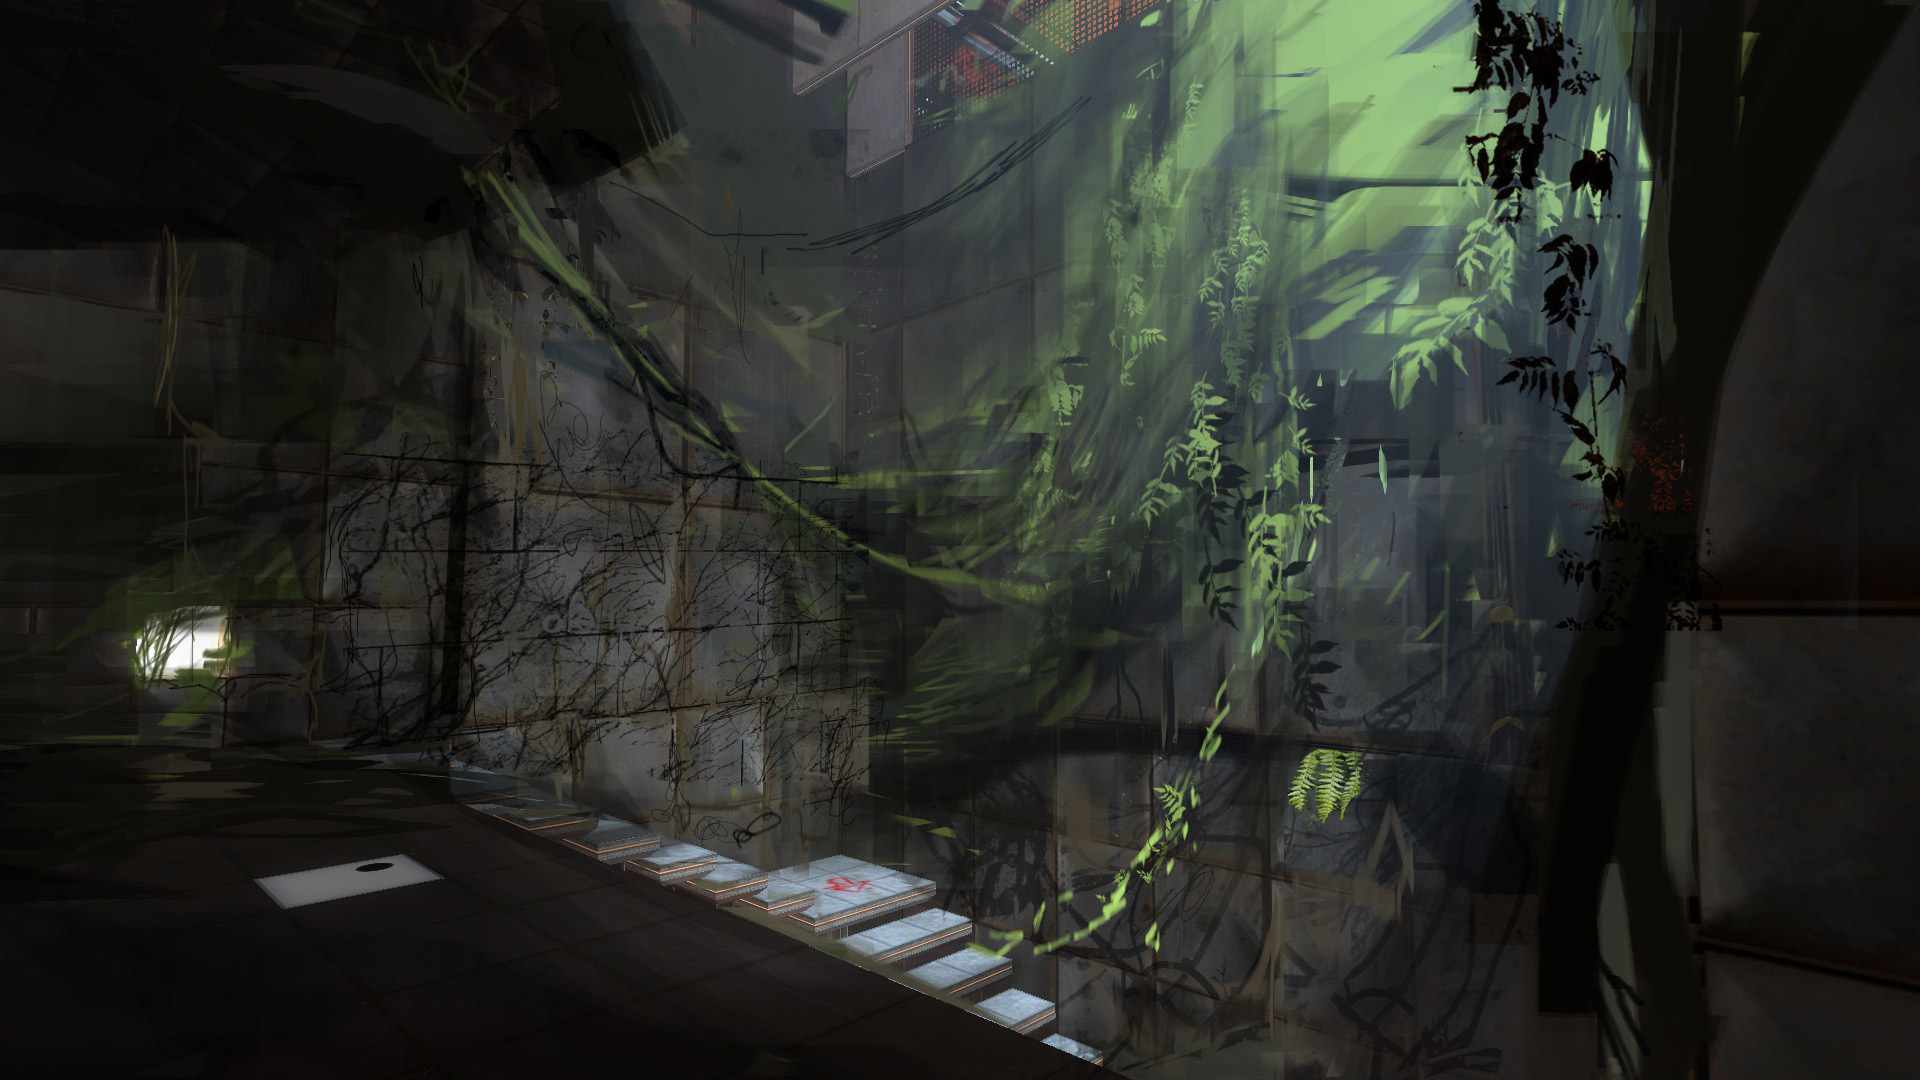 Falling Down A Portal Wallpaper Steam Trading Cards Are Pieces Of Artwork Usually 1080p